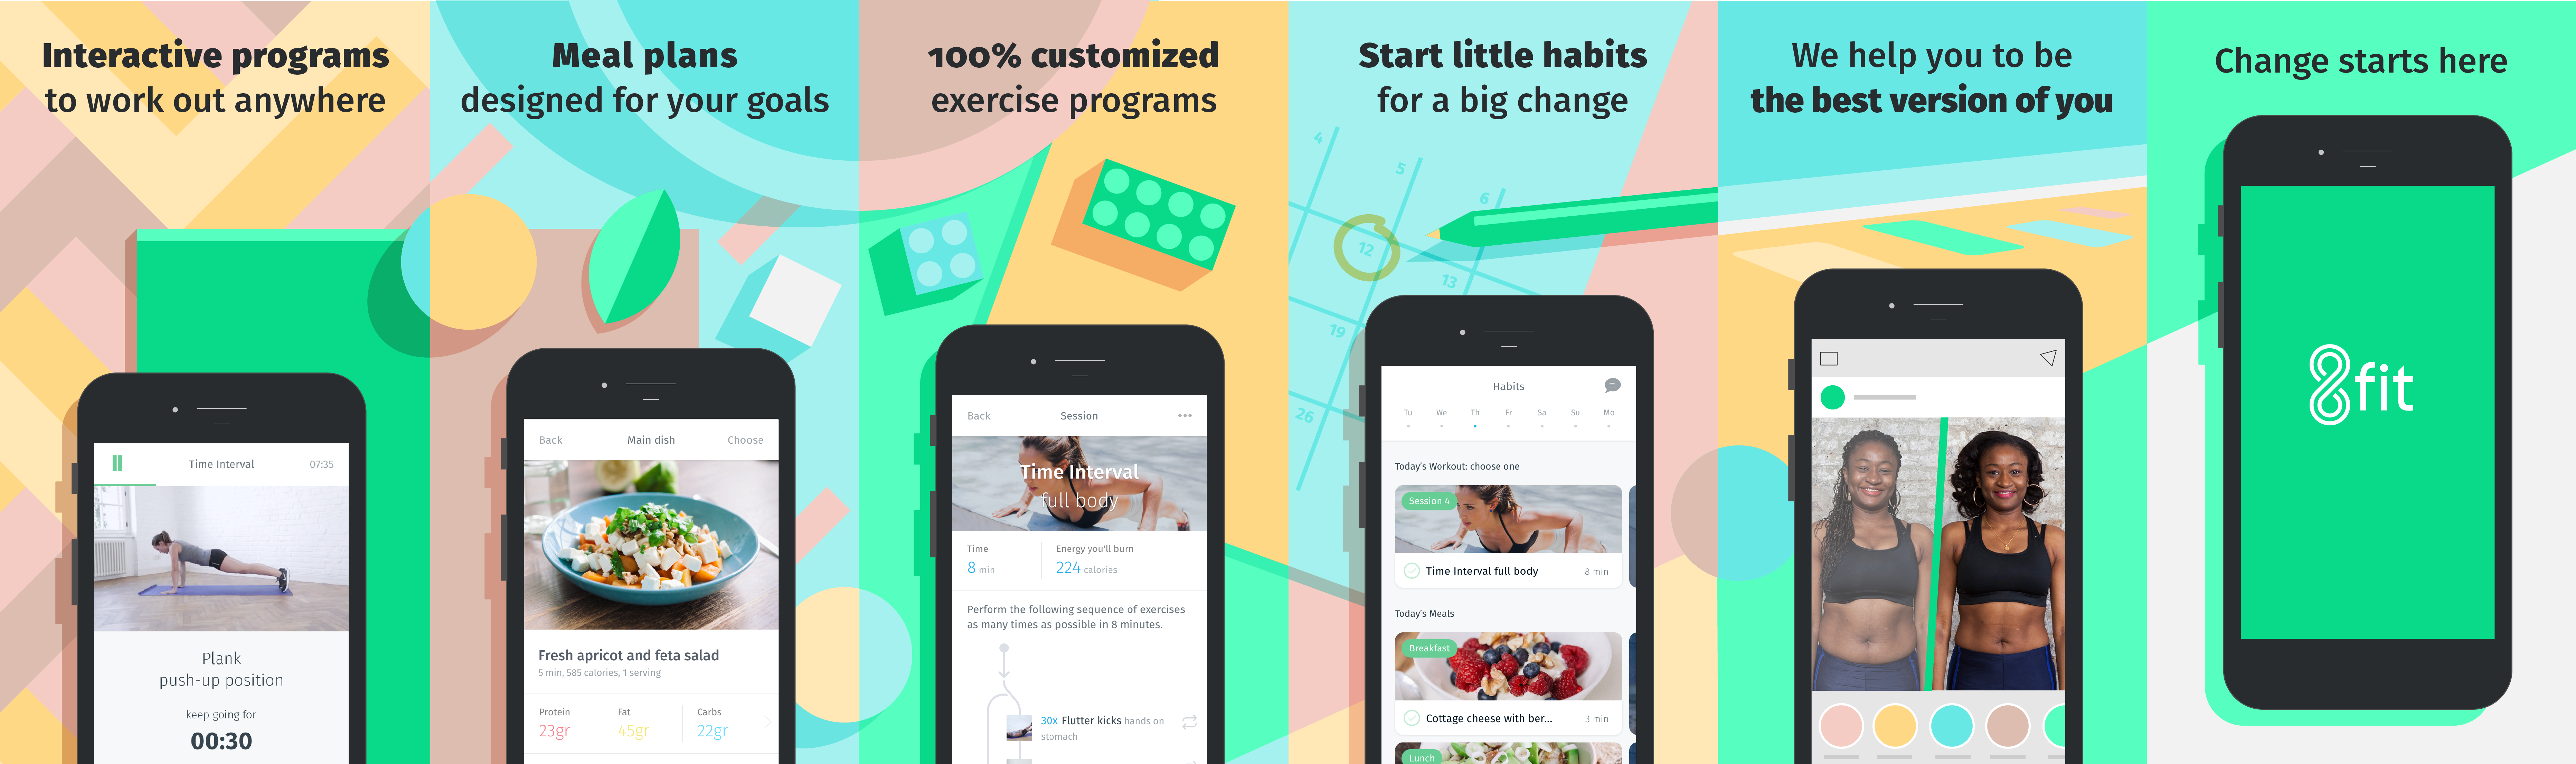 Marketing Design for the 8fit app